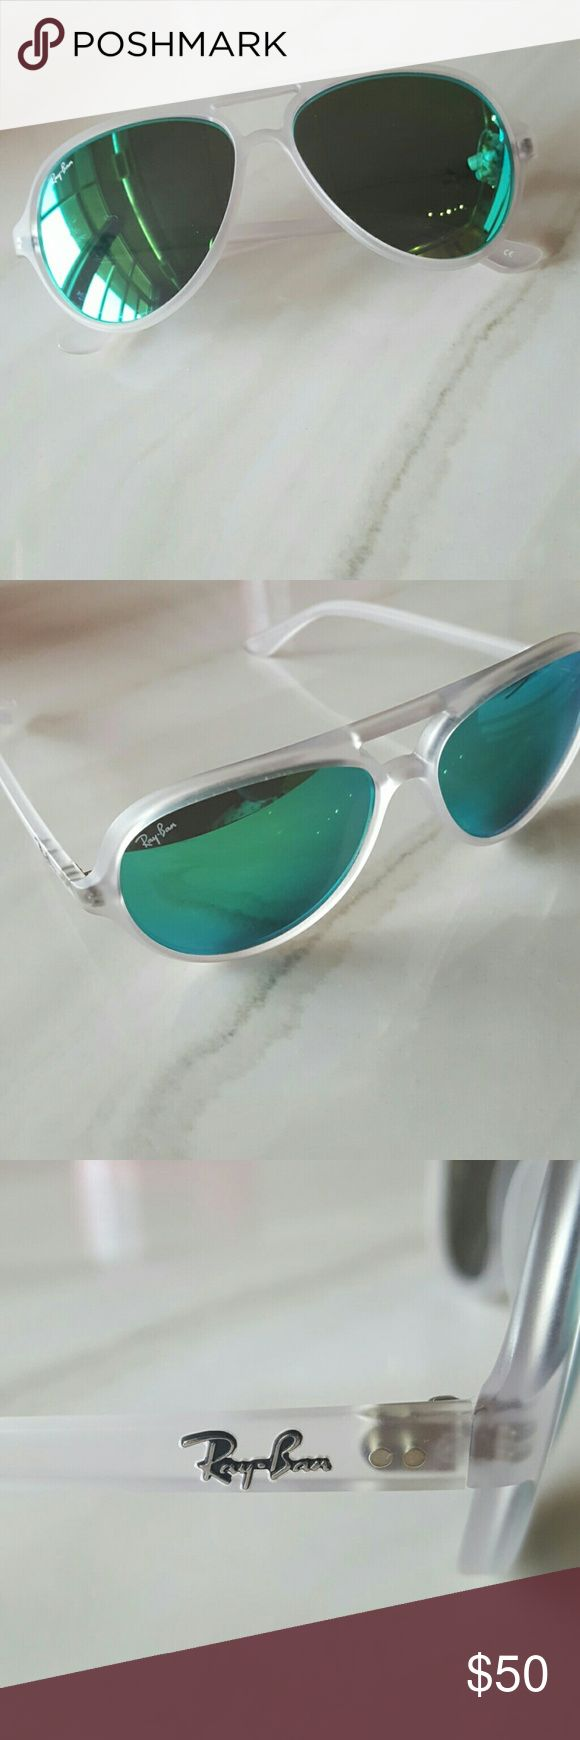 Ray Ban Green Mirror Aviators Clear Matte Lucite Frames with green mirrored lenses. Includes Ray Ban Case and Cloth. Ray-Ban Accessories Sunglasses